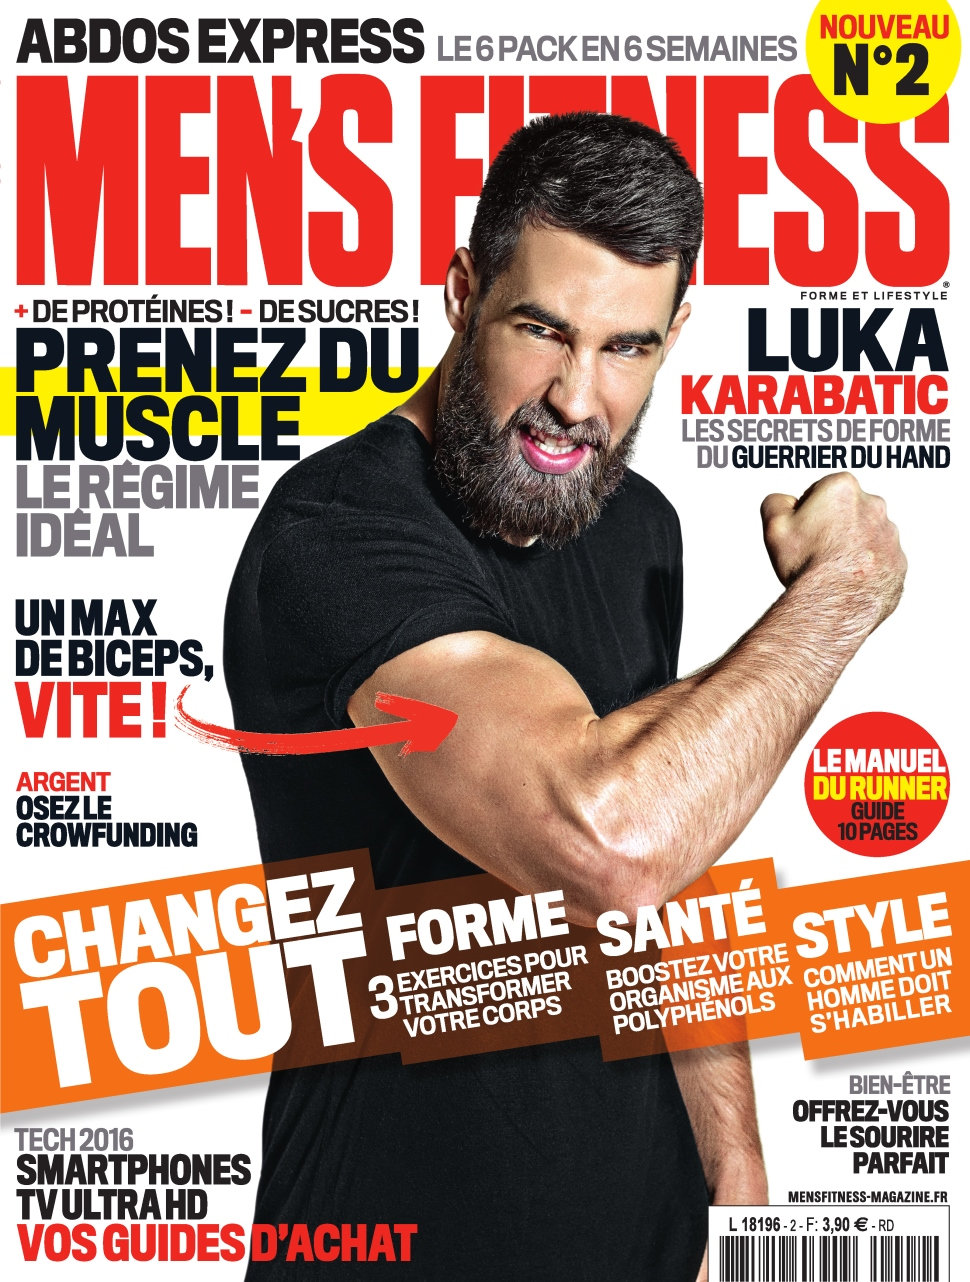 Men's Fitness N°2 - Avril 2016